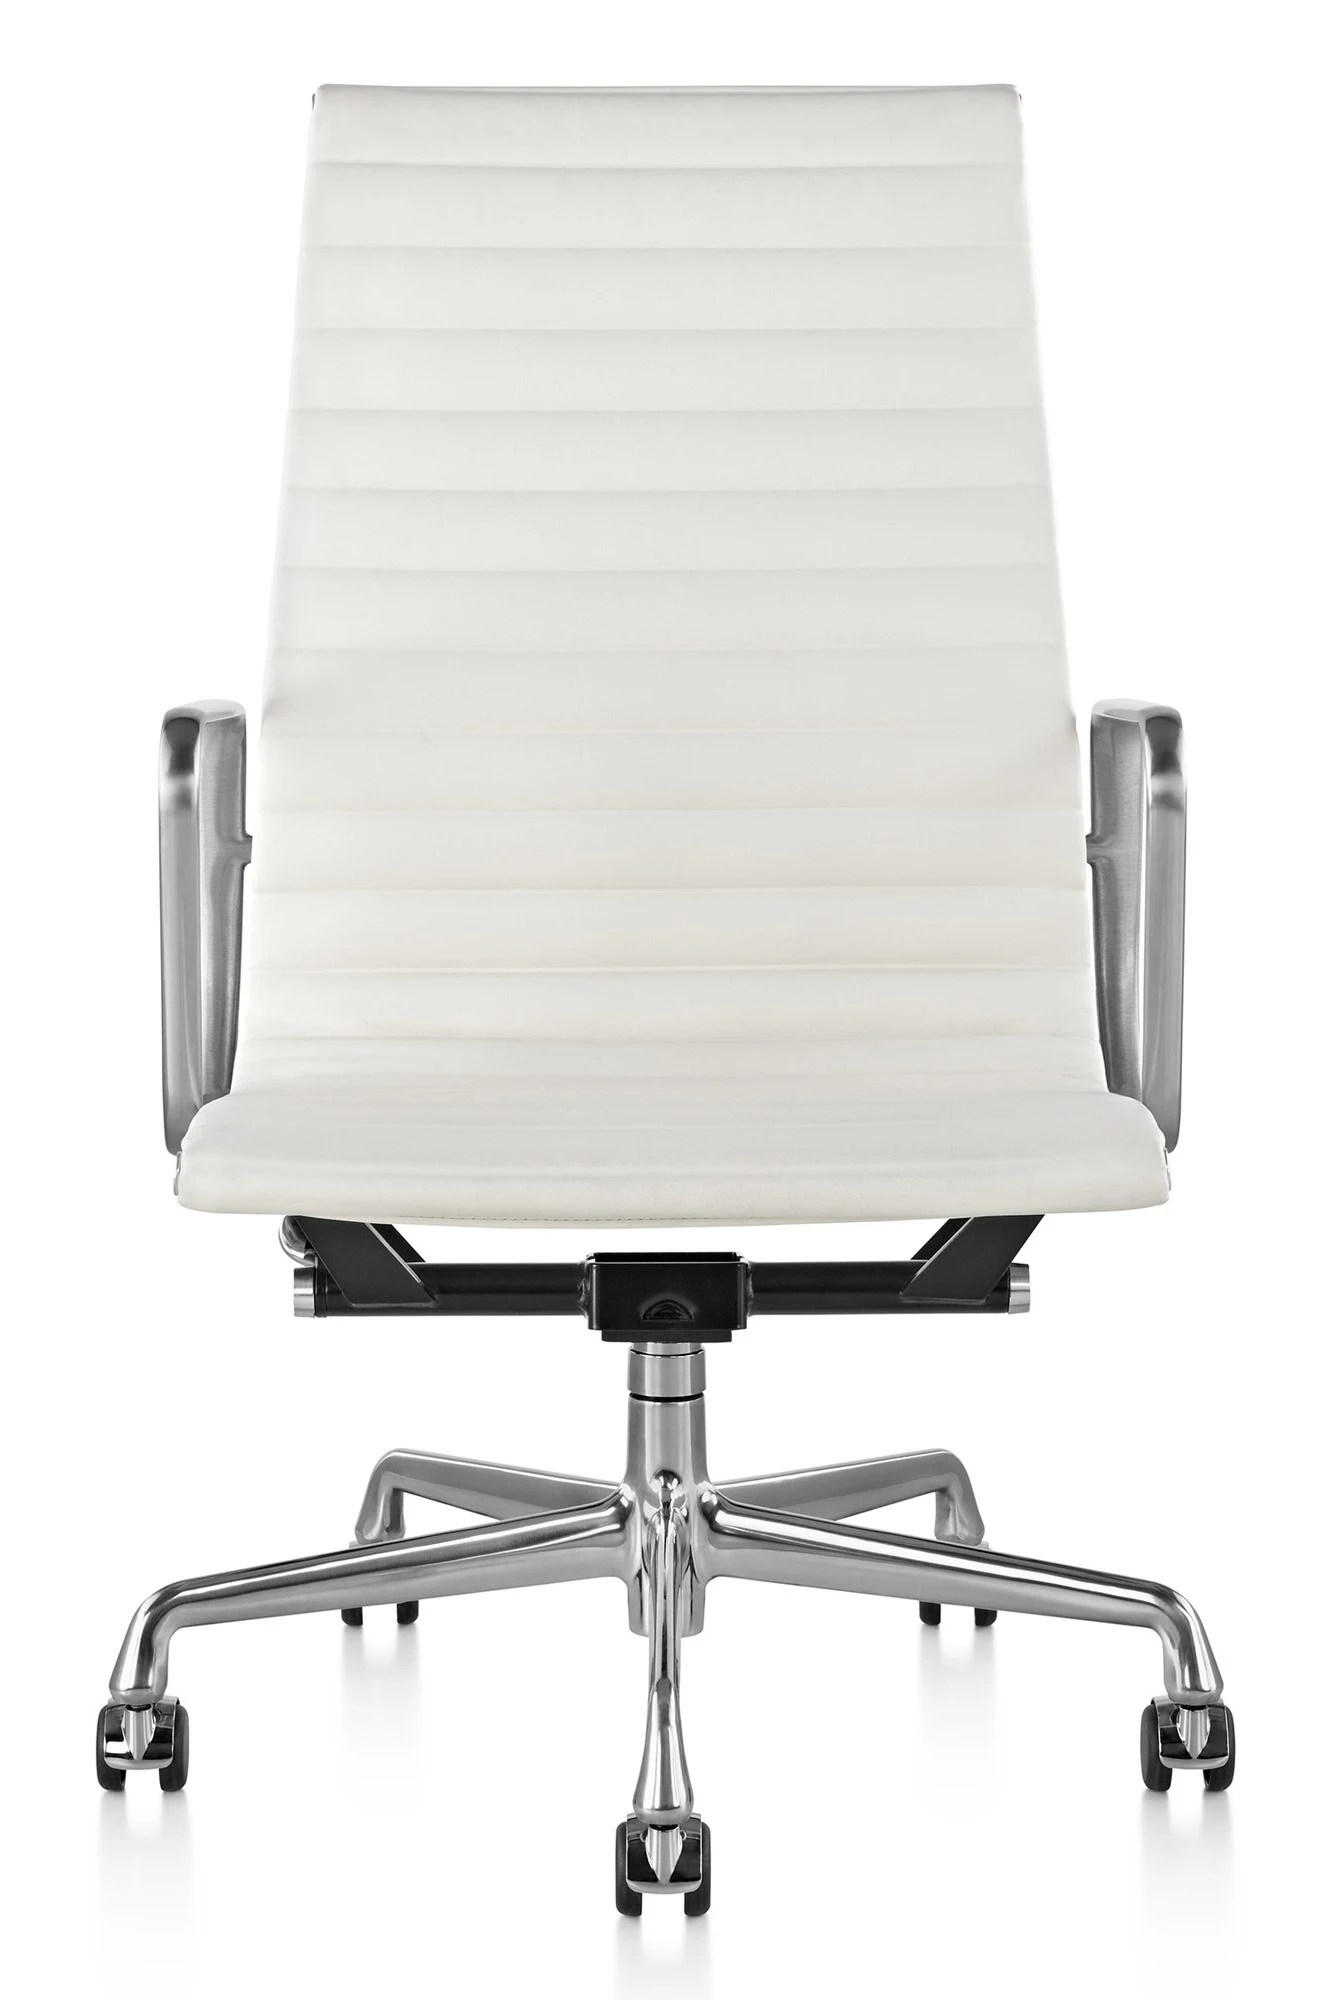 eames aluminum chair sun chaise lounge chairs herman miller group executive